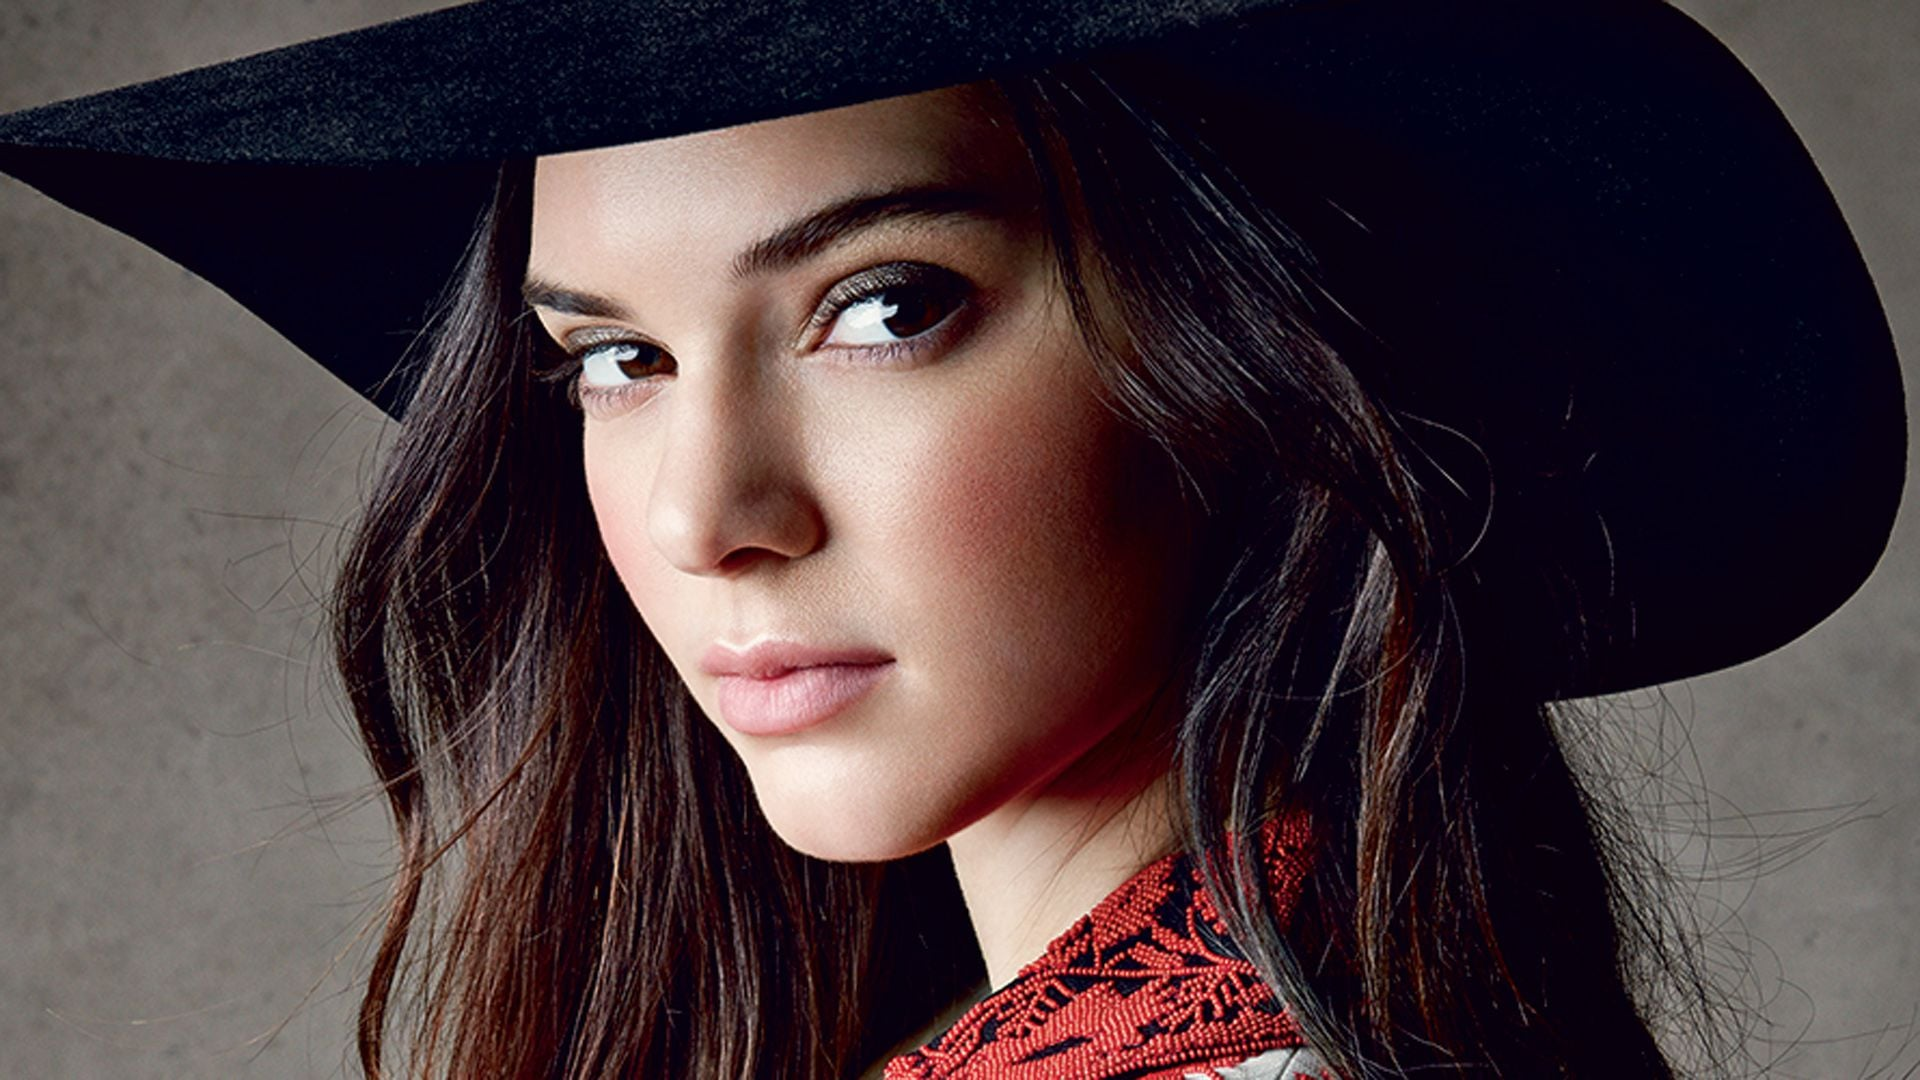 Pics of Kendall Jenner eyes, hat